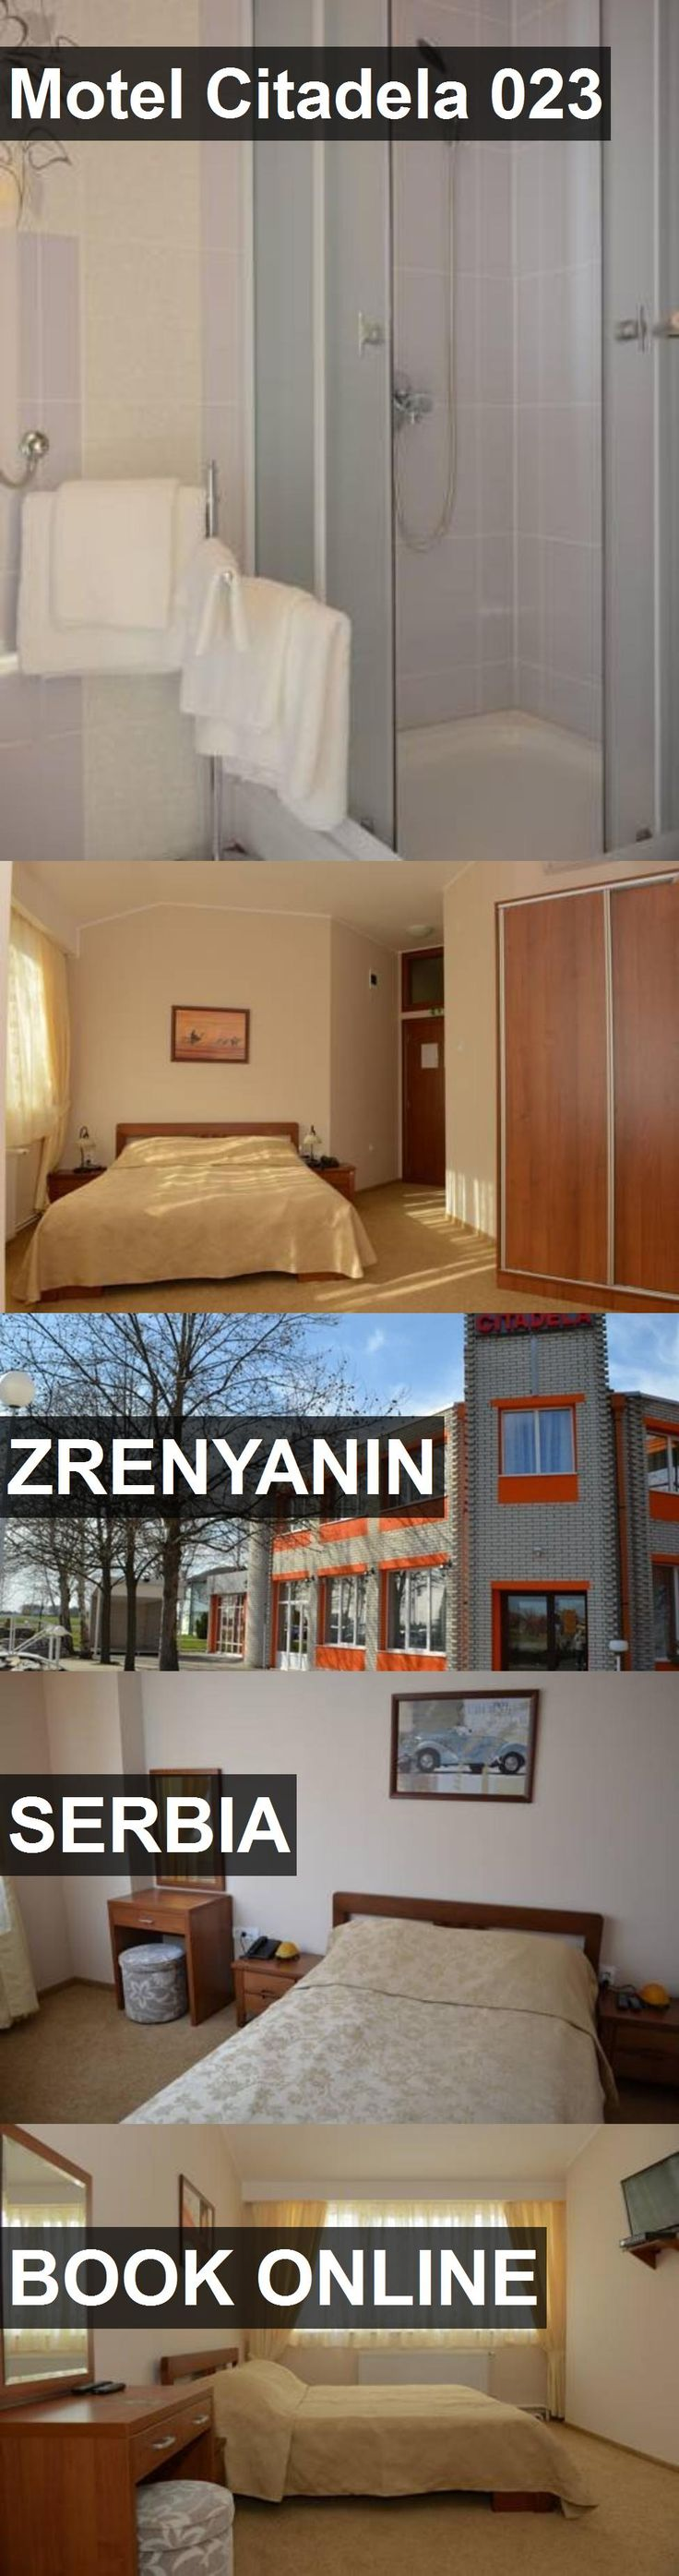 Hotel Motel Citadela 023 in Zrenyanin, Serbia. For more information, photos, reviews and best prices please follow the link. #Serbia #Zrenyanin #MotelCitadela023 #hotel #travel #vacation